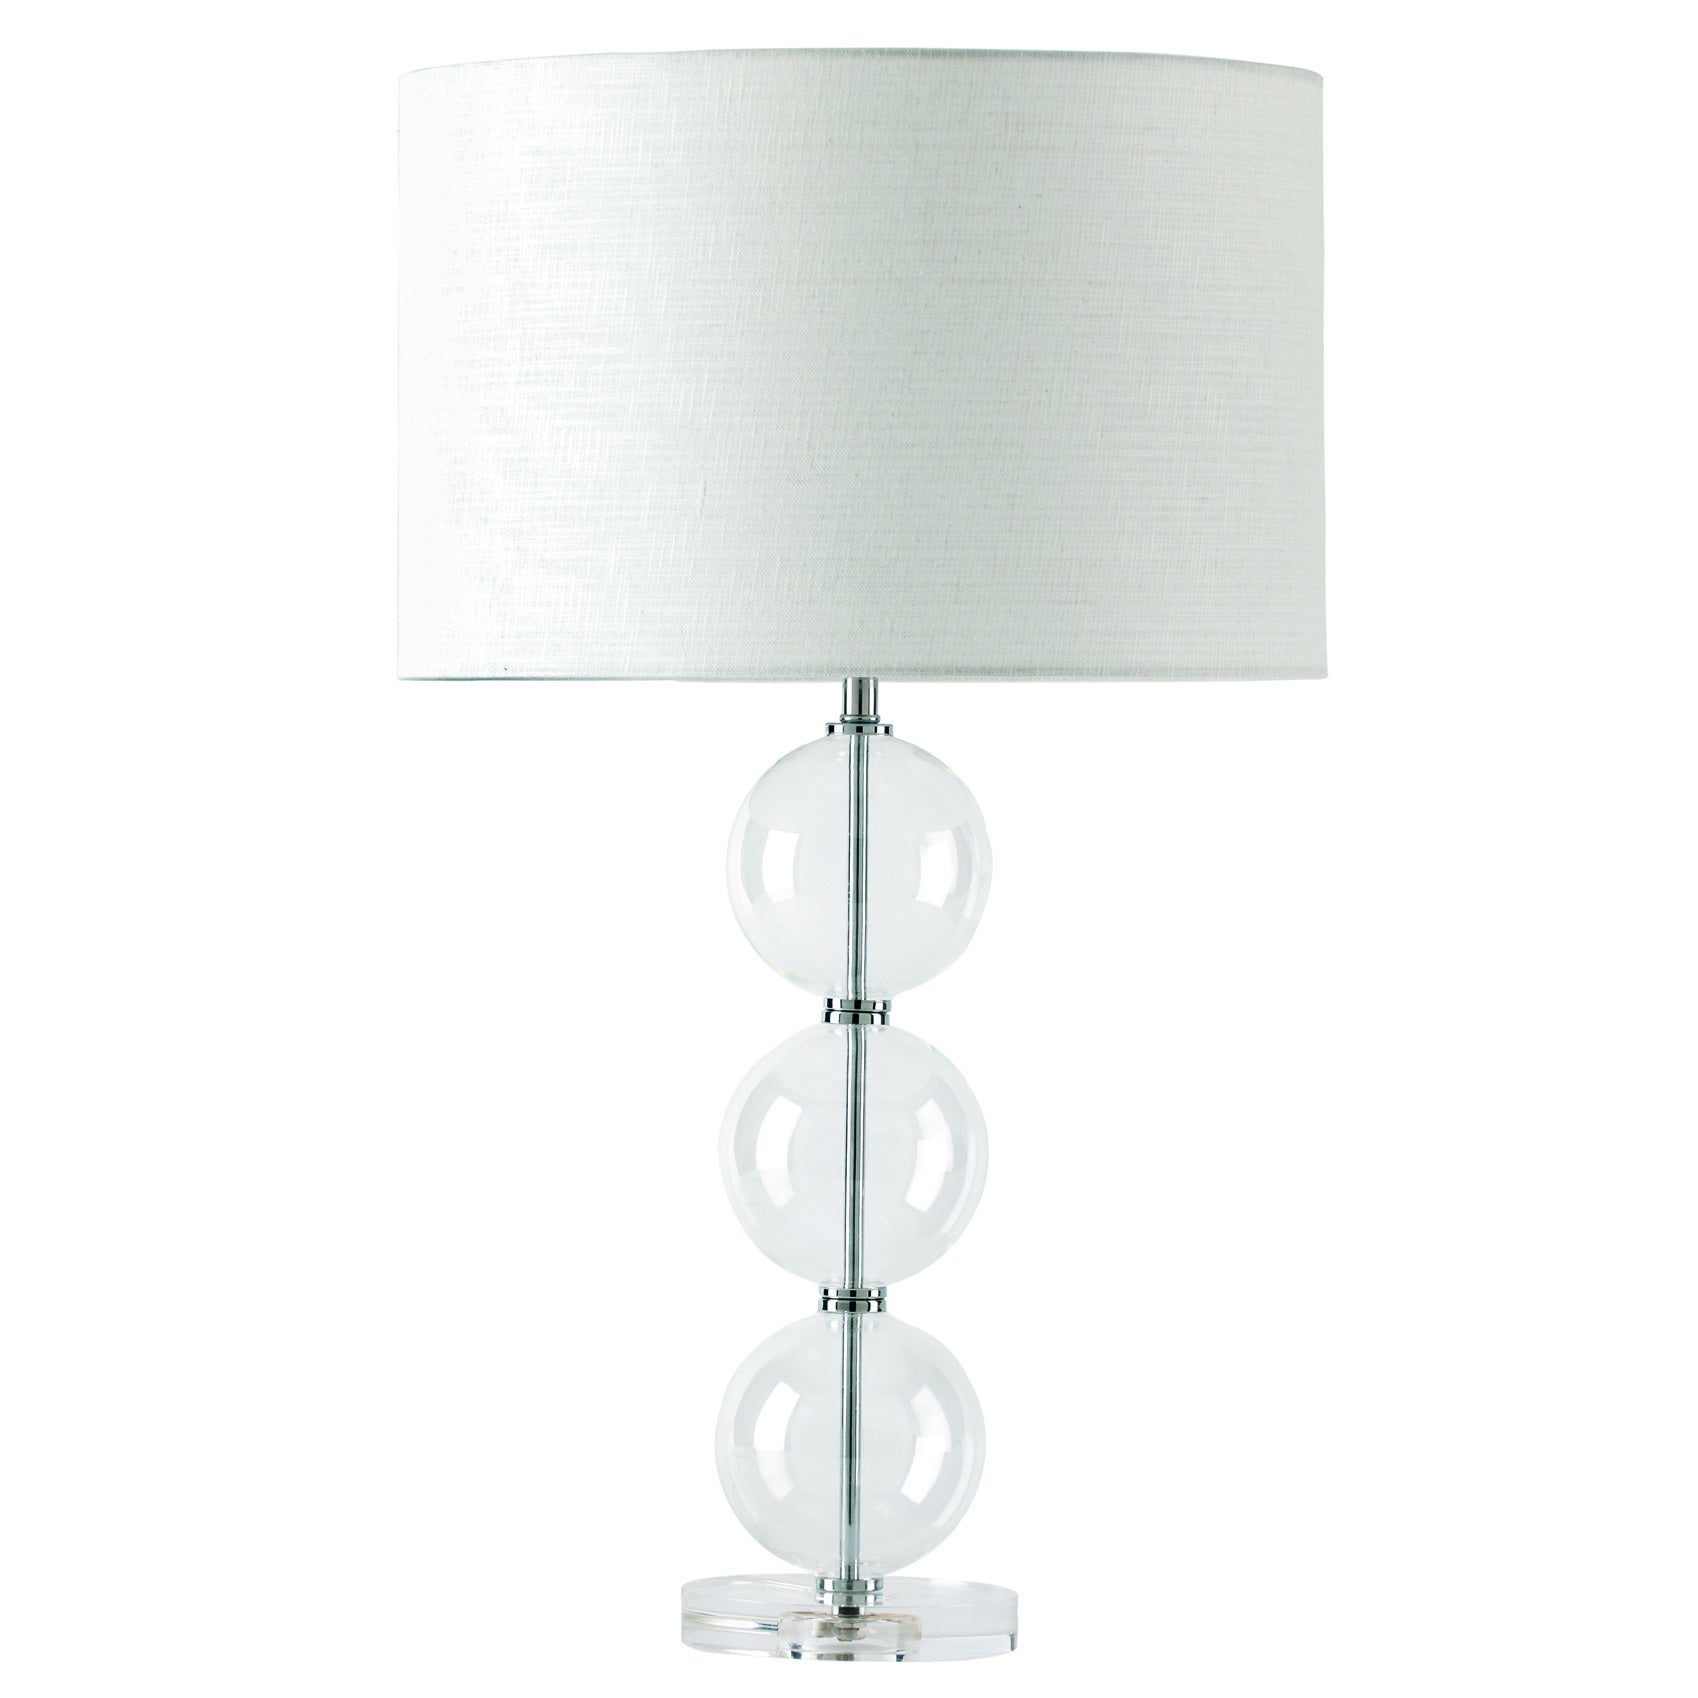 Knox 20 Inch Modern Glass Table Lamp pertaining to size 1698 X 1698